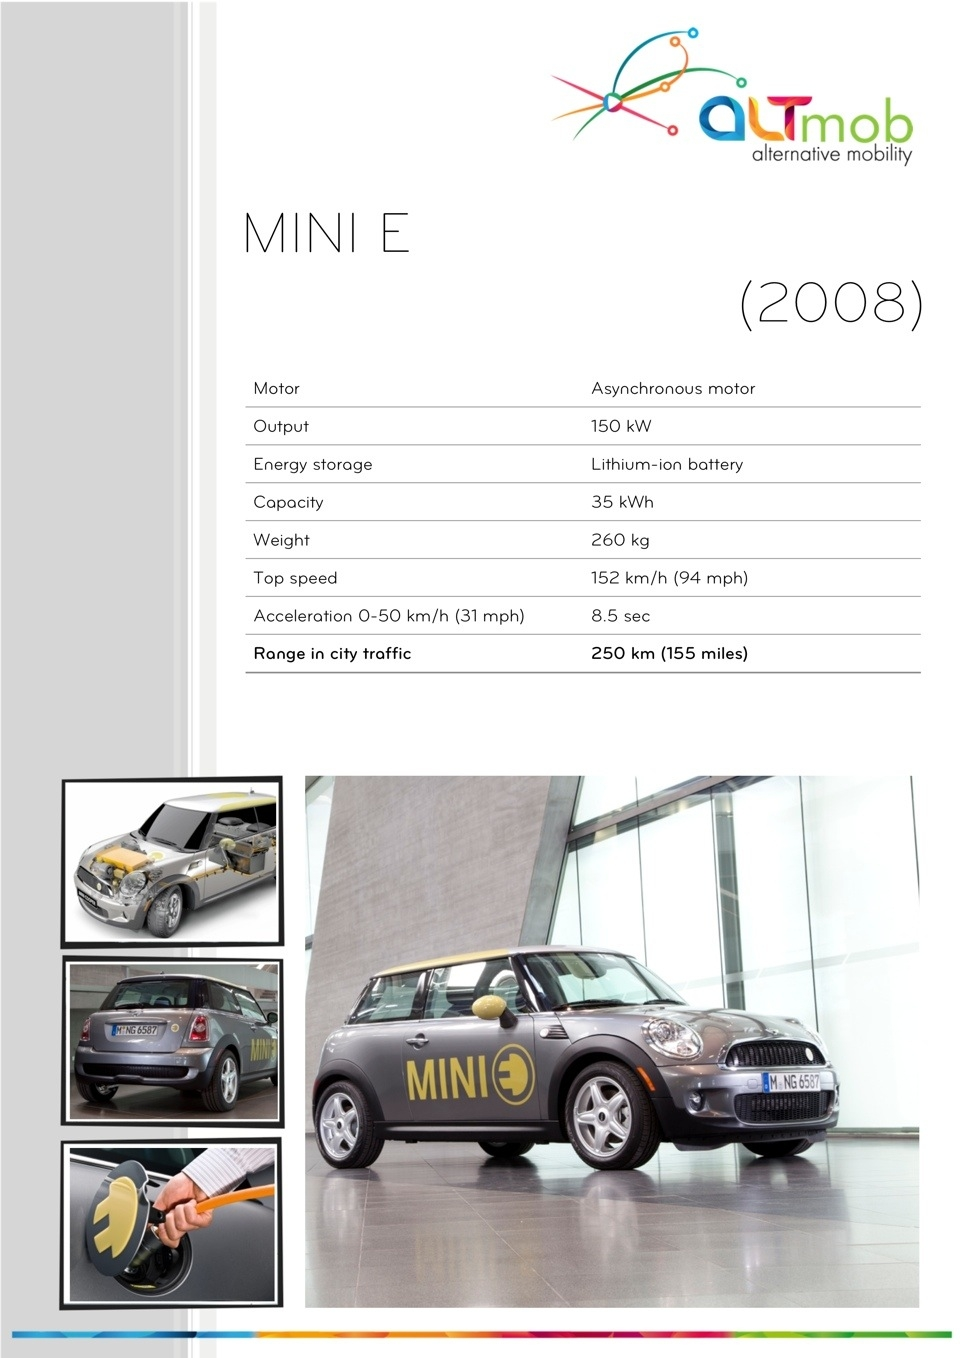 MINI E Electric